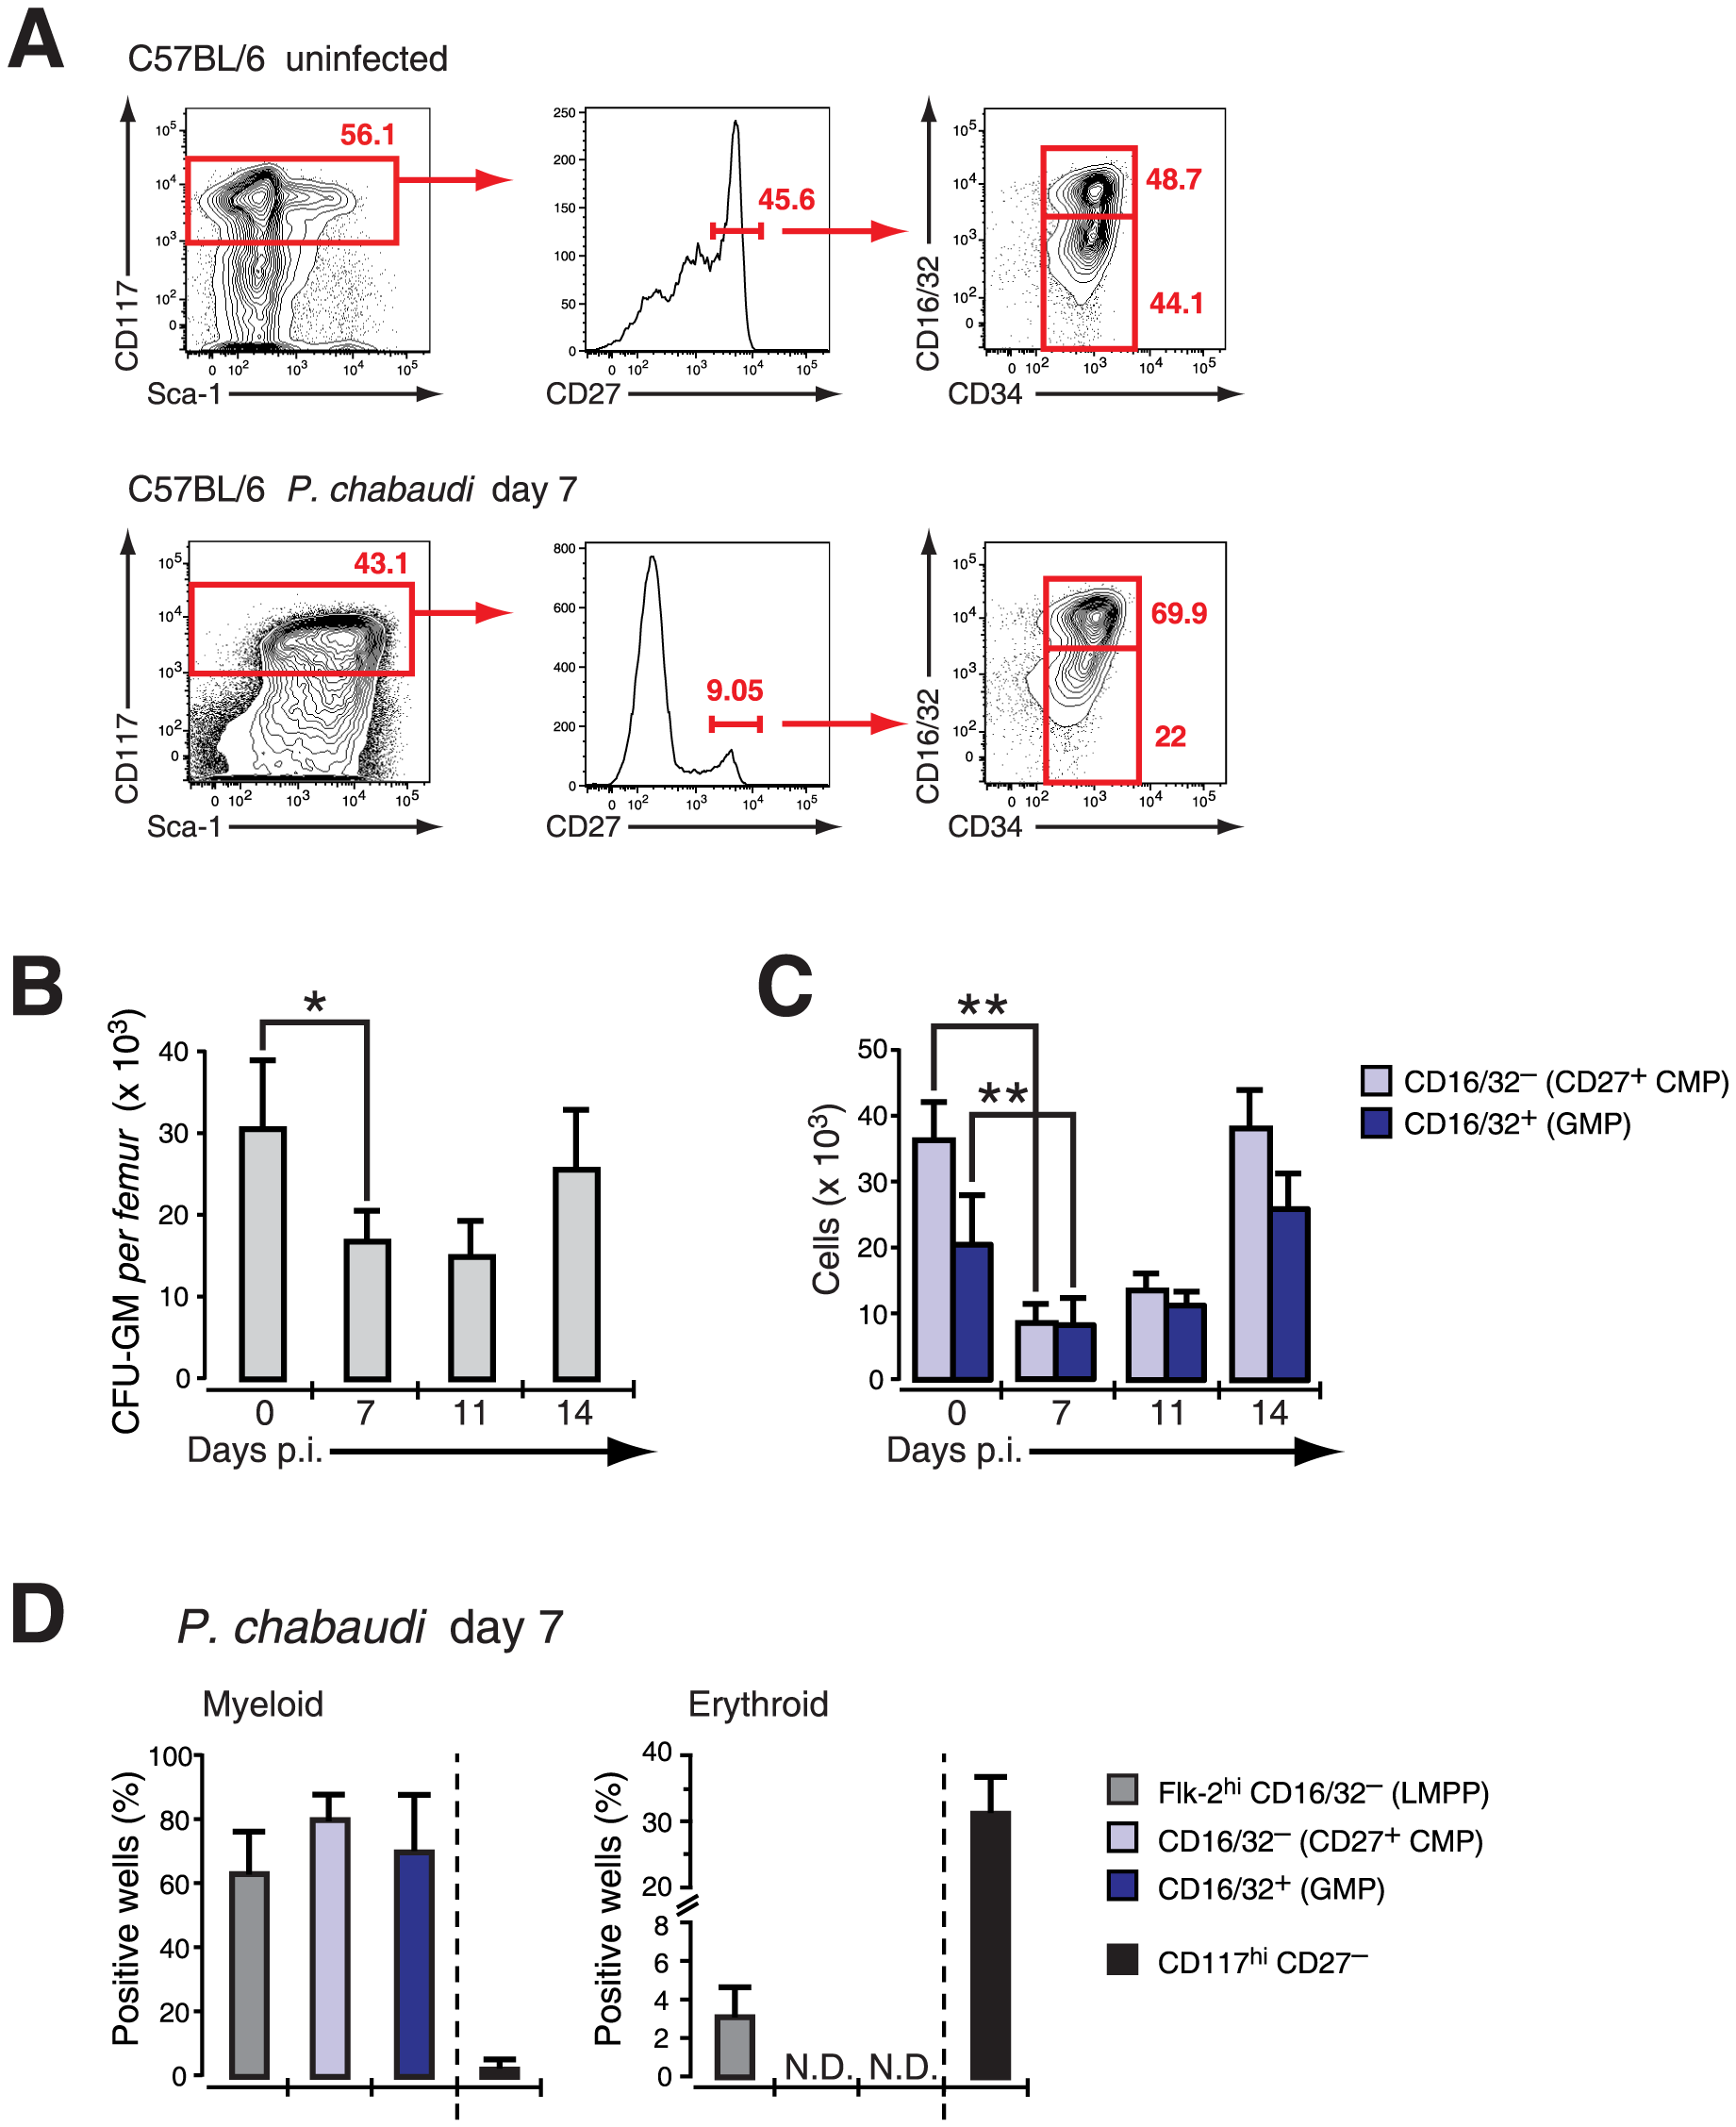 Effect of acute infection with <i>P. chabaudi</i> on myeloid progenitor cells in the bone marrow.